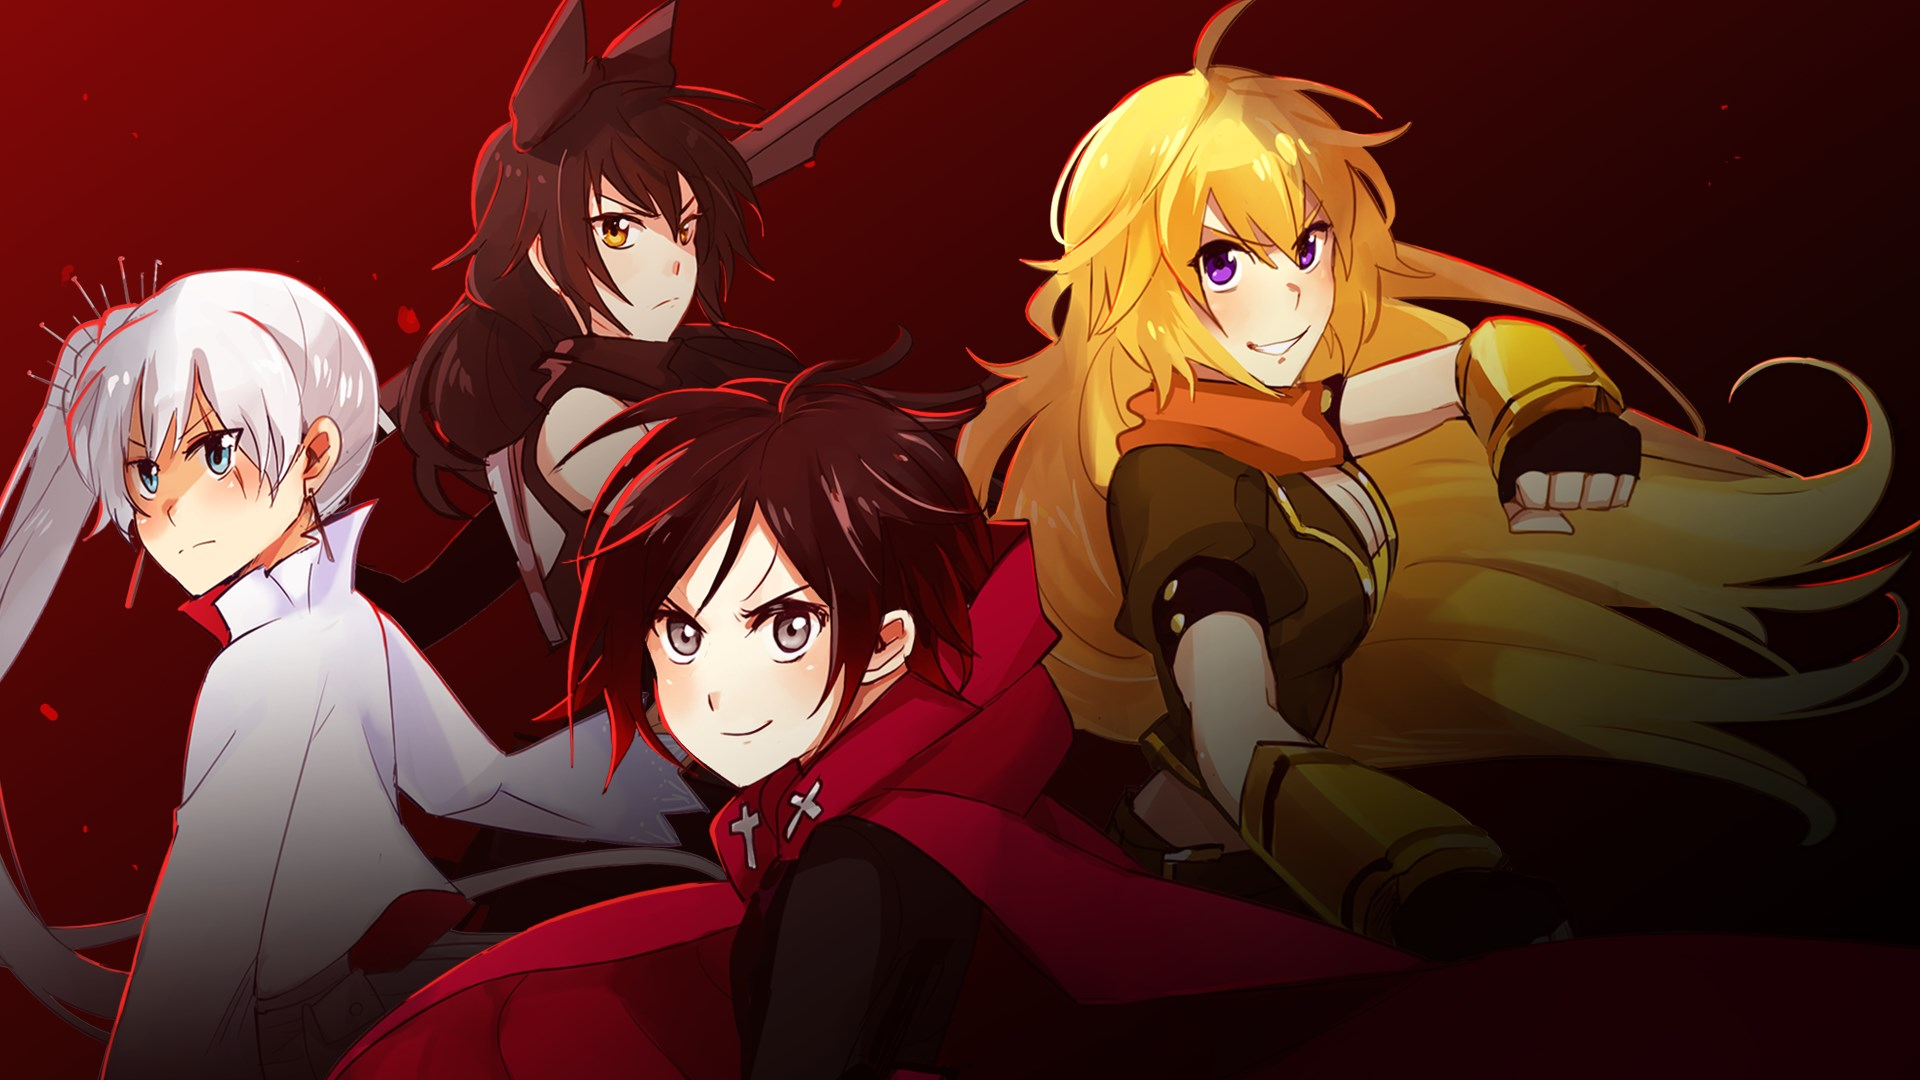 RWBY: Grimm Eclipse - Team JNPR Bundle